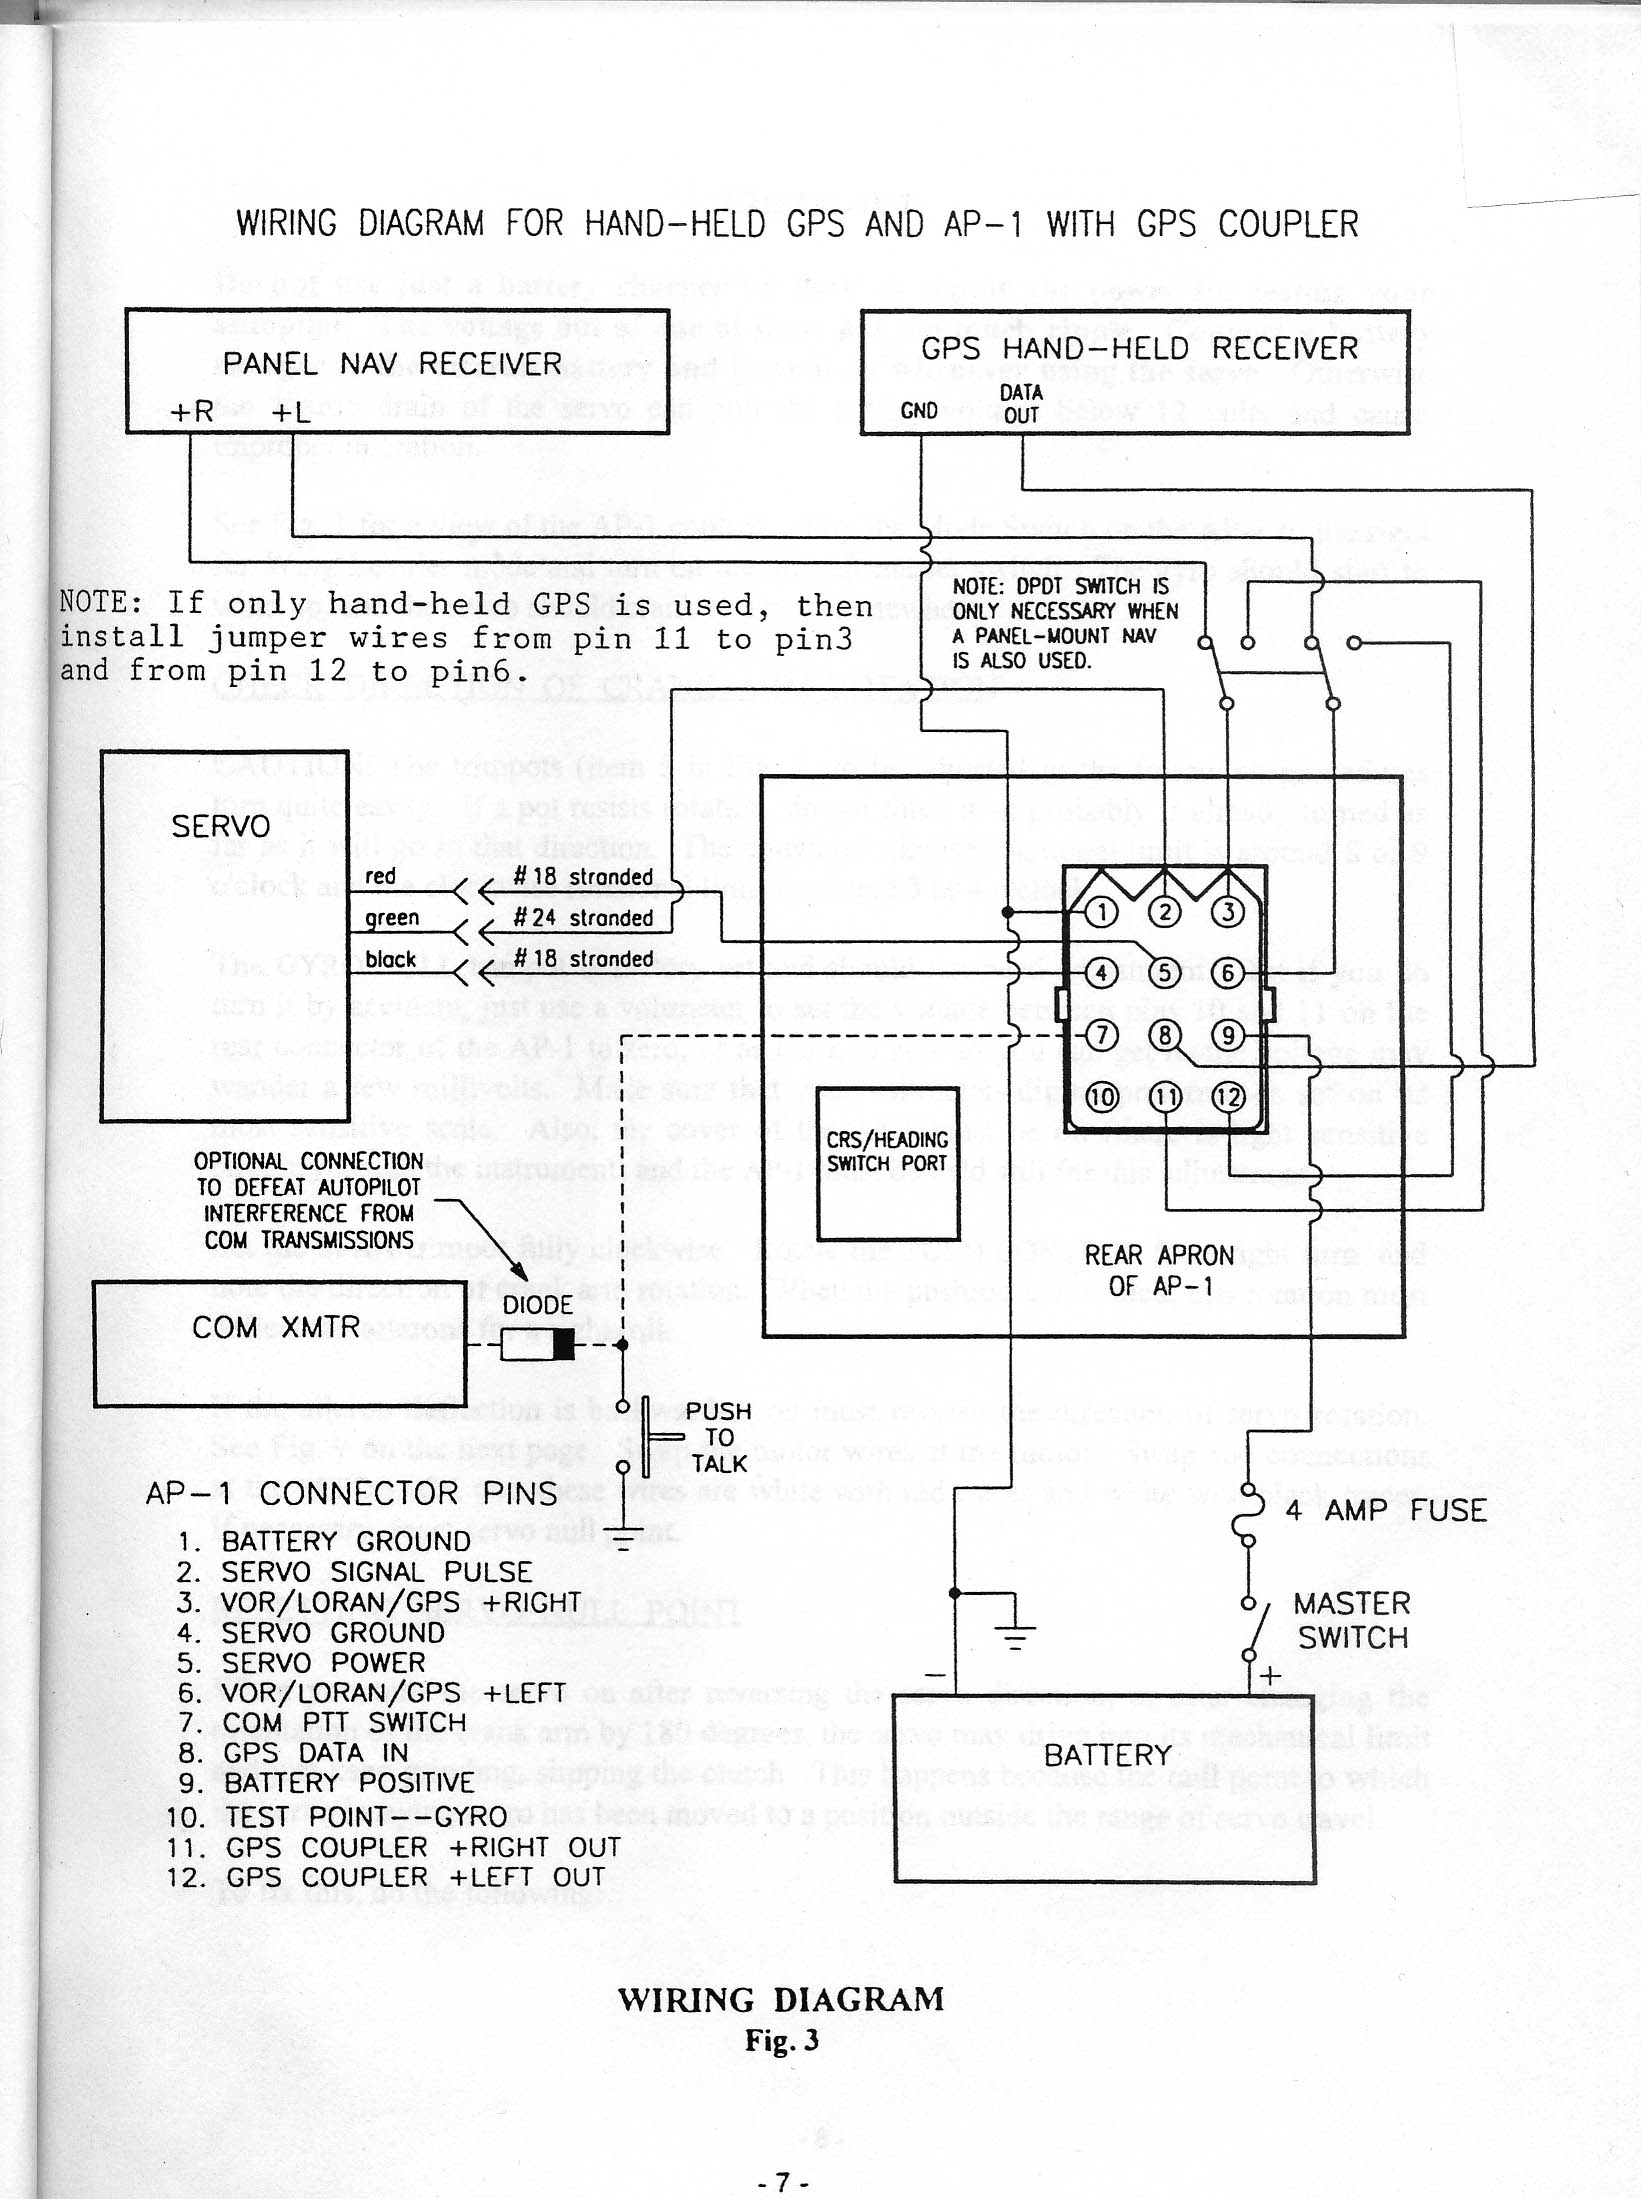 diagram king ky 92 wiring diagram automotive wiring diagrams \u2022 wiring king ka 134 audio panel wiring diagram at reclaimingppi.co